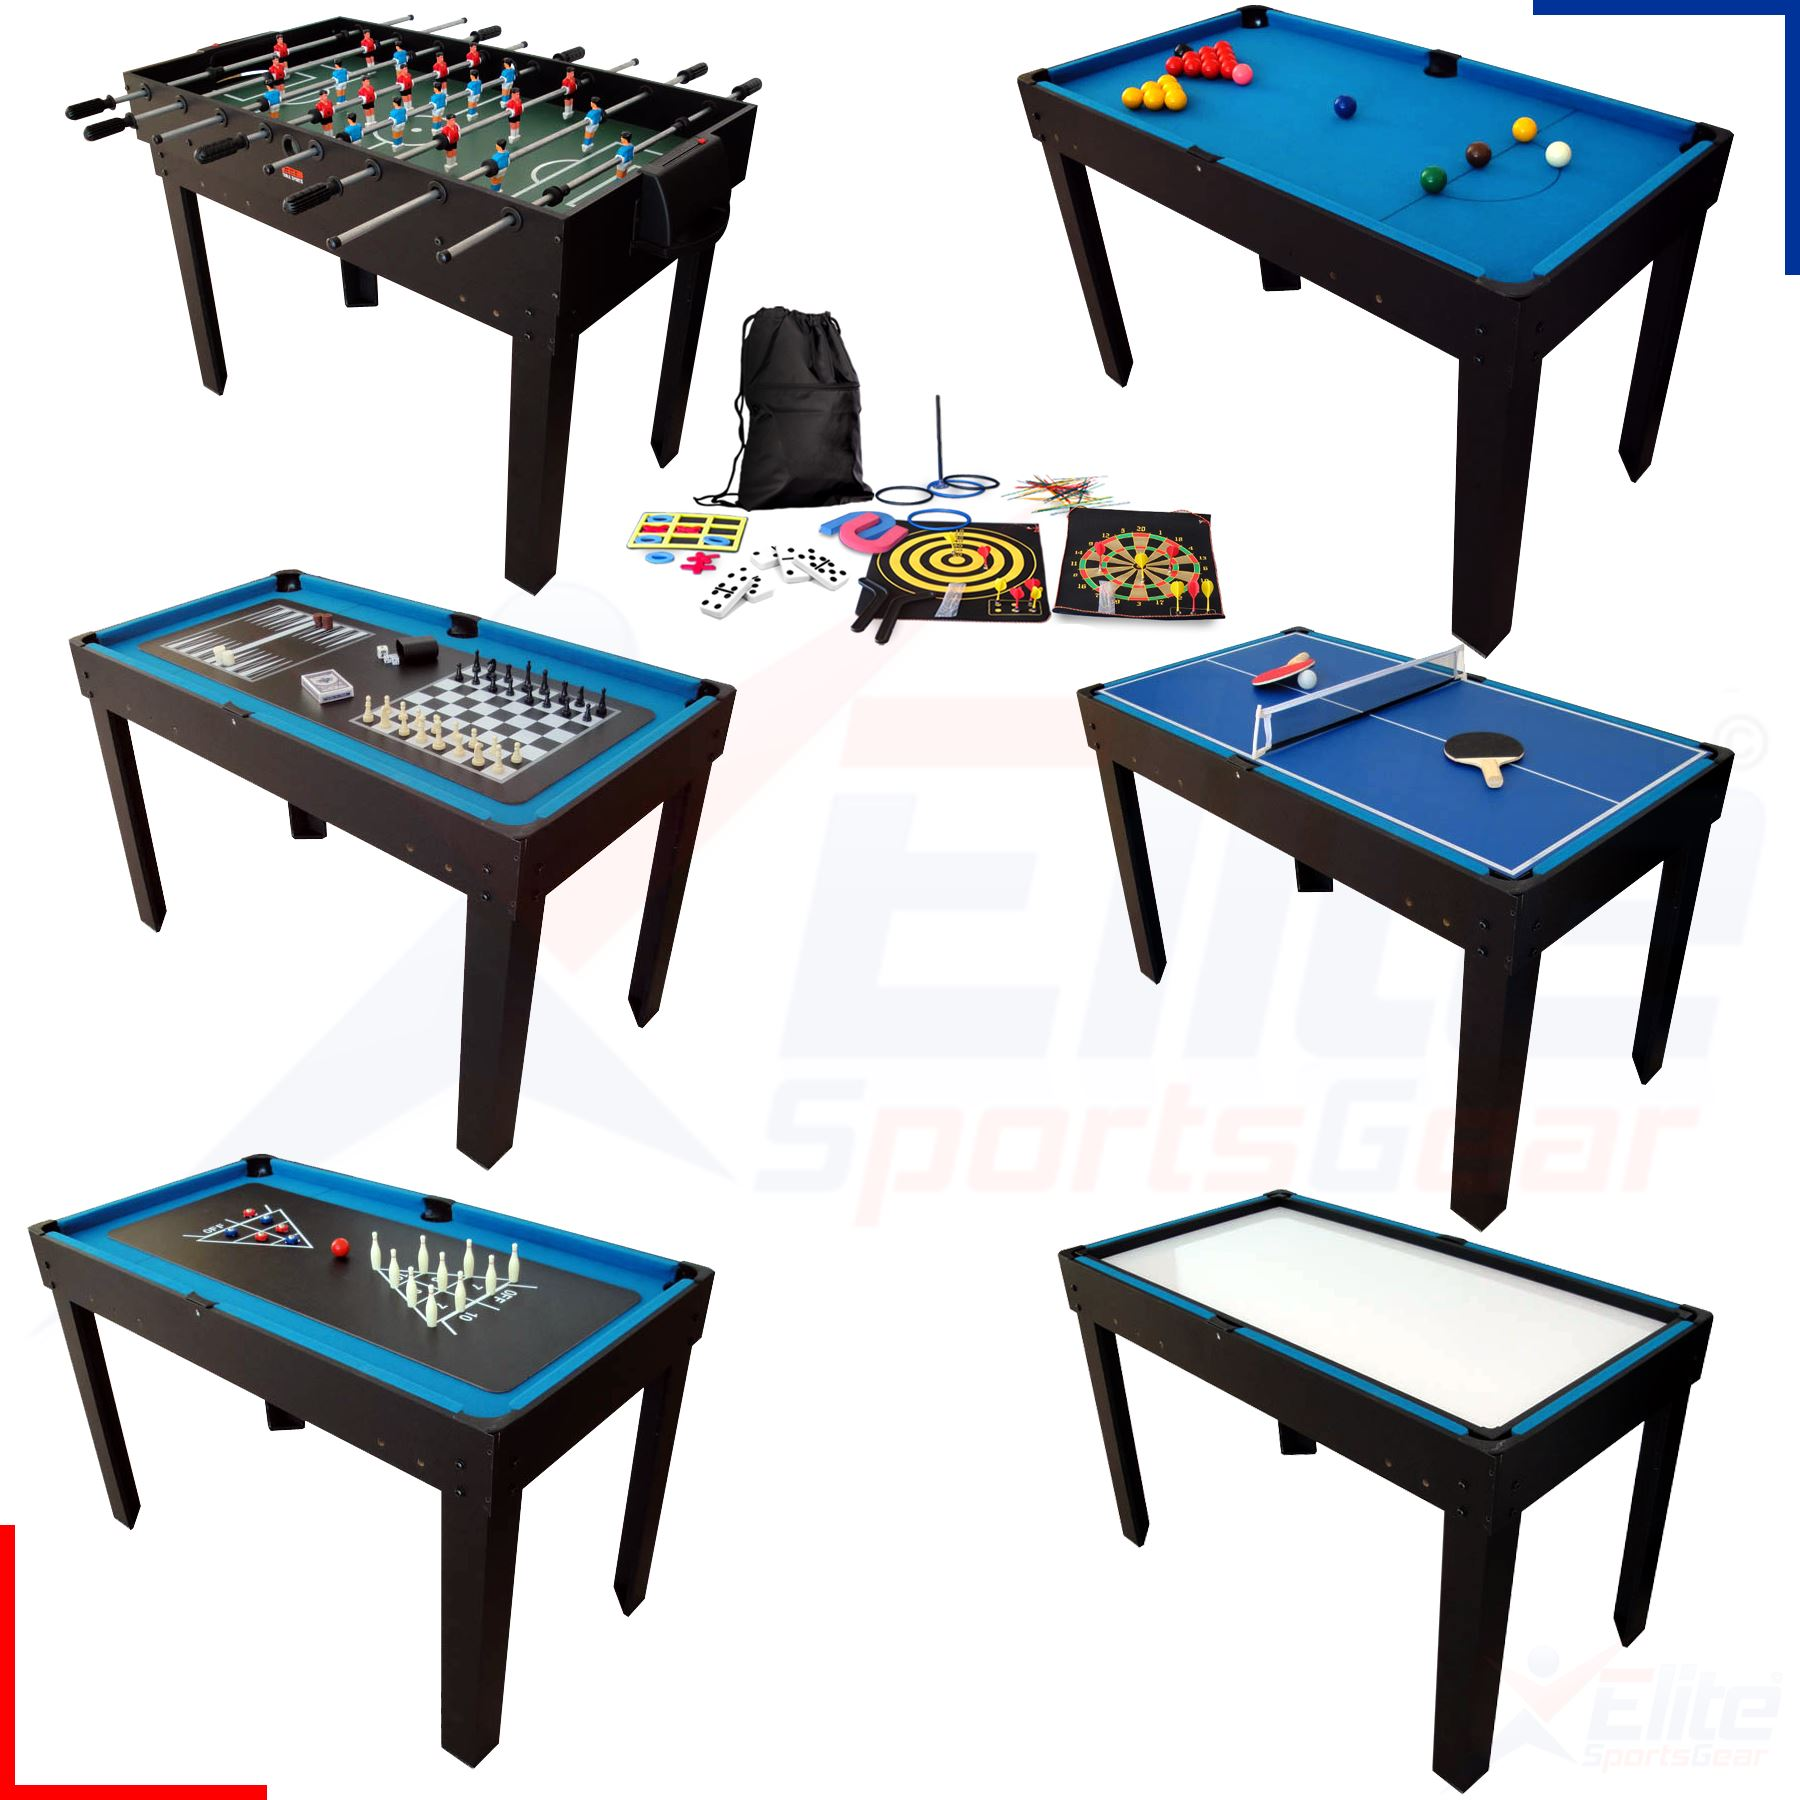 Bce 12 in 1 multi family games table snooker football for 12 in 1 game table